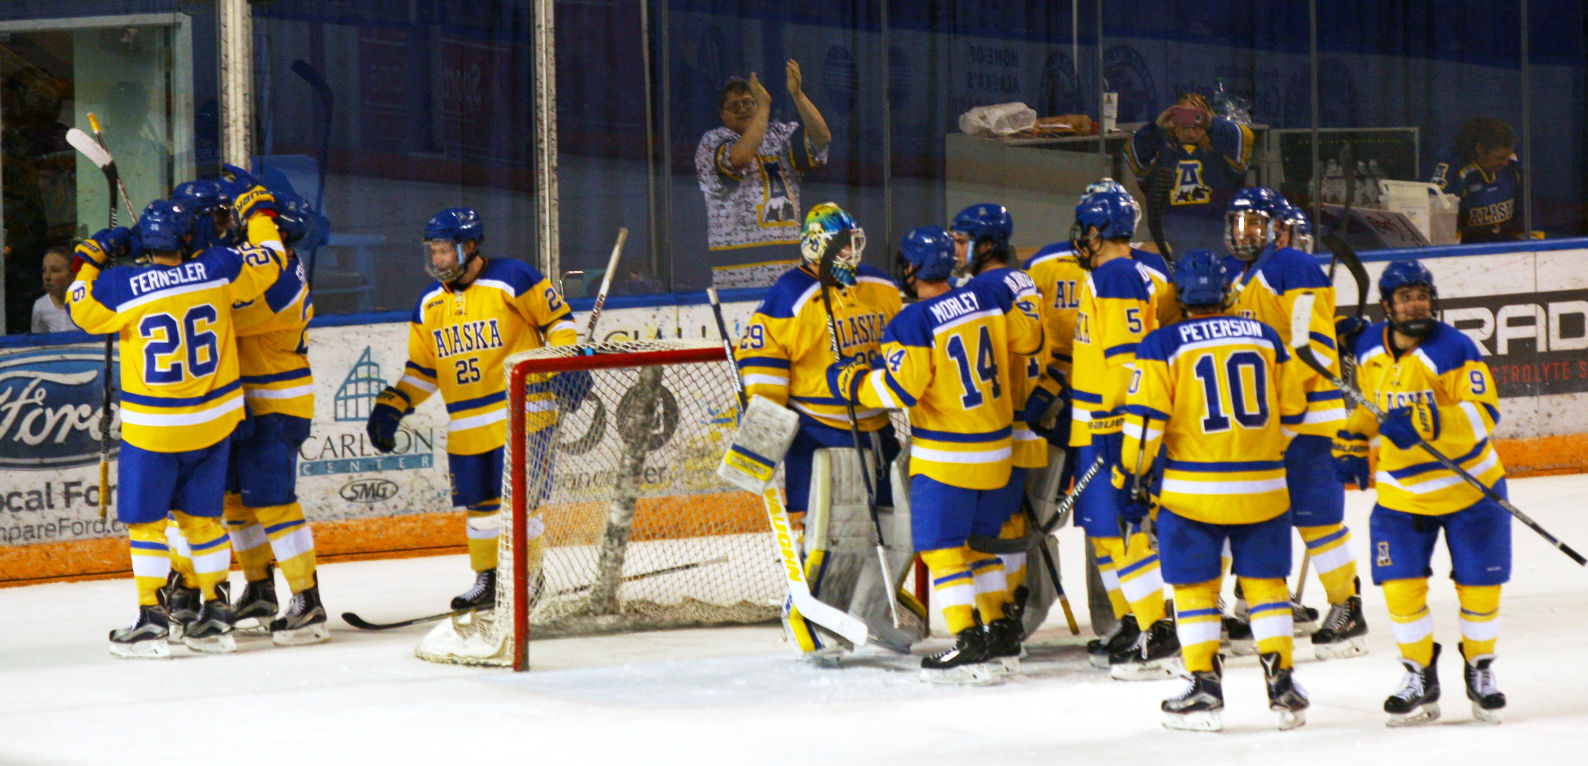 NCAA: Waiver Available For University Of Alaska Fairbanks If Some Sports Are Cut